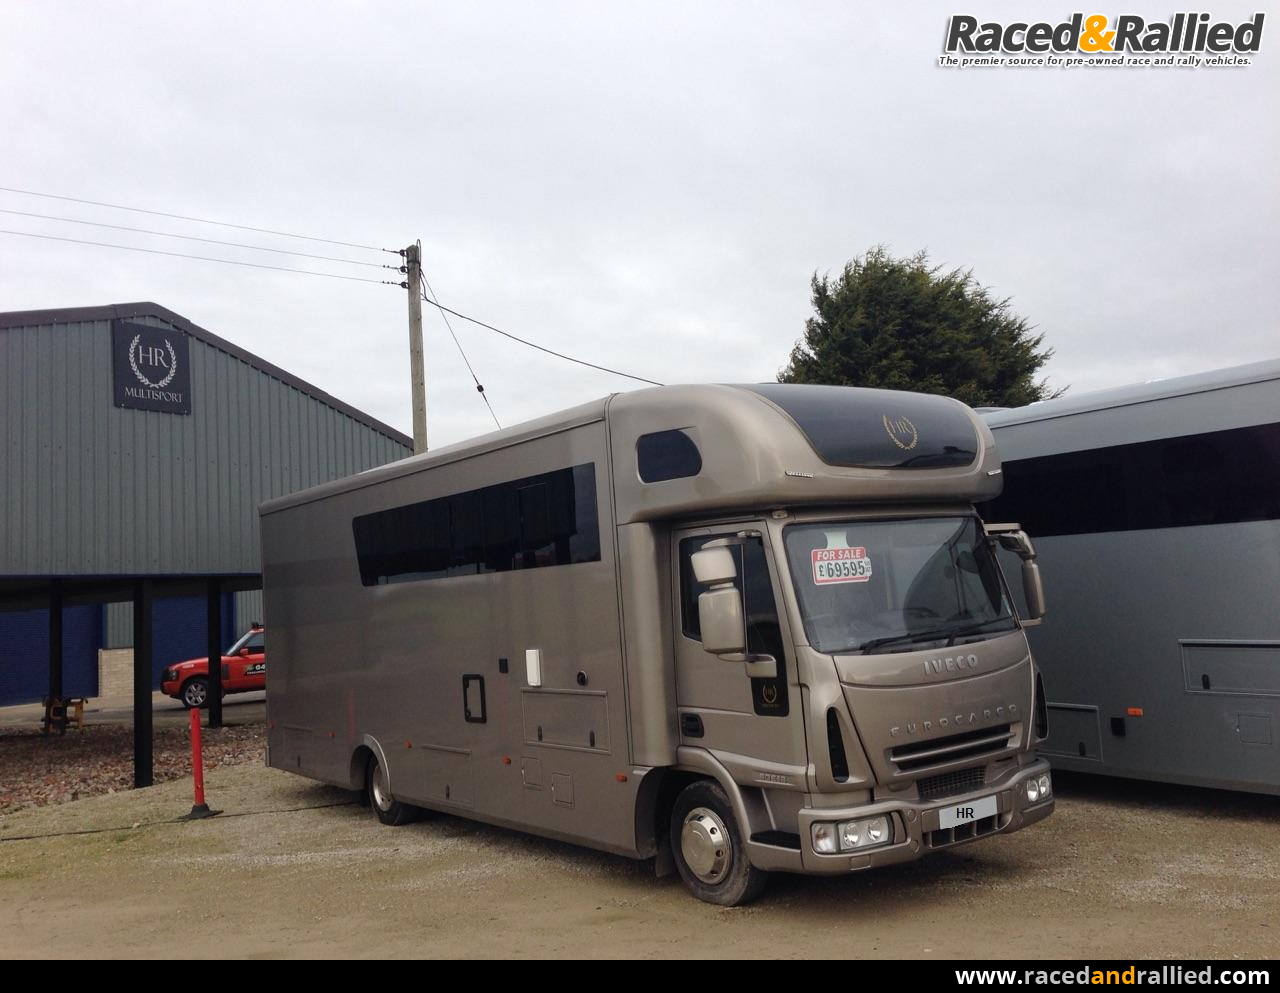 Stunning Tail Lift Car Race Transporter Motorhome With